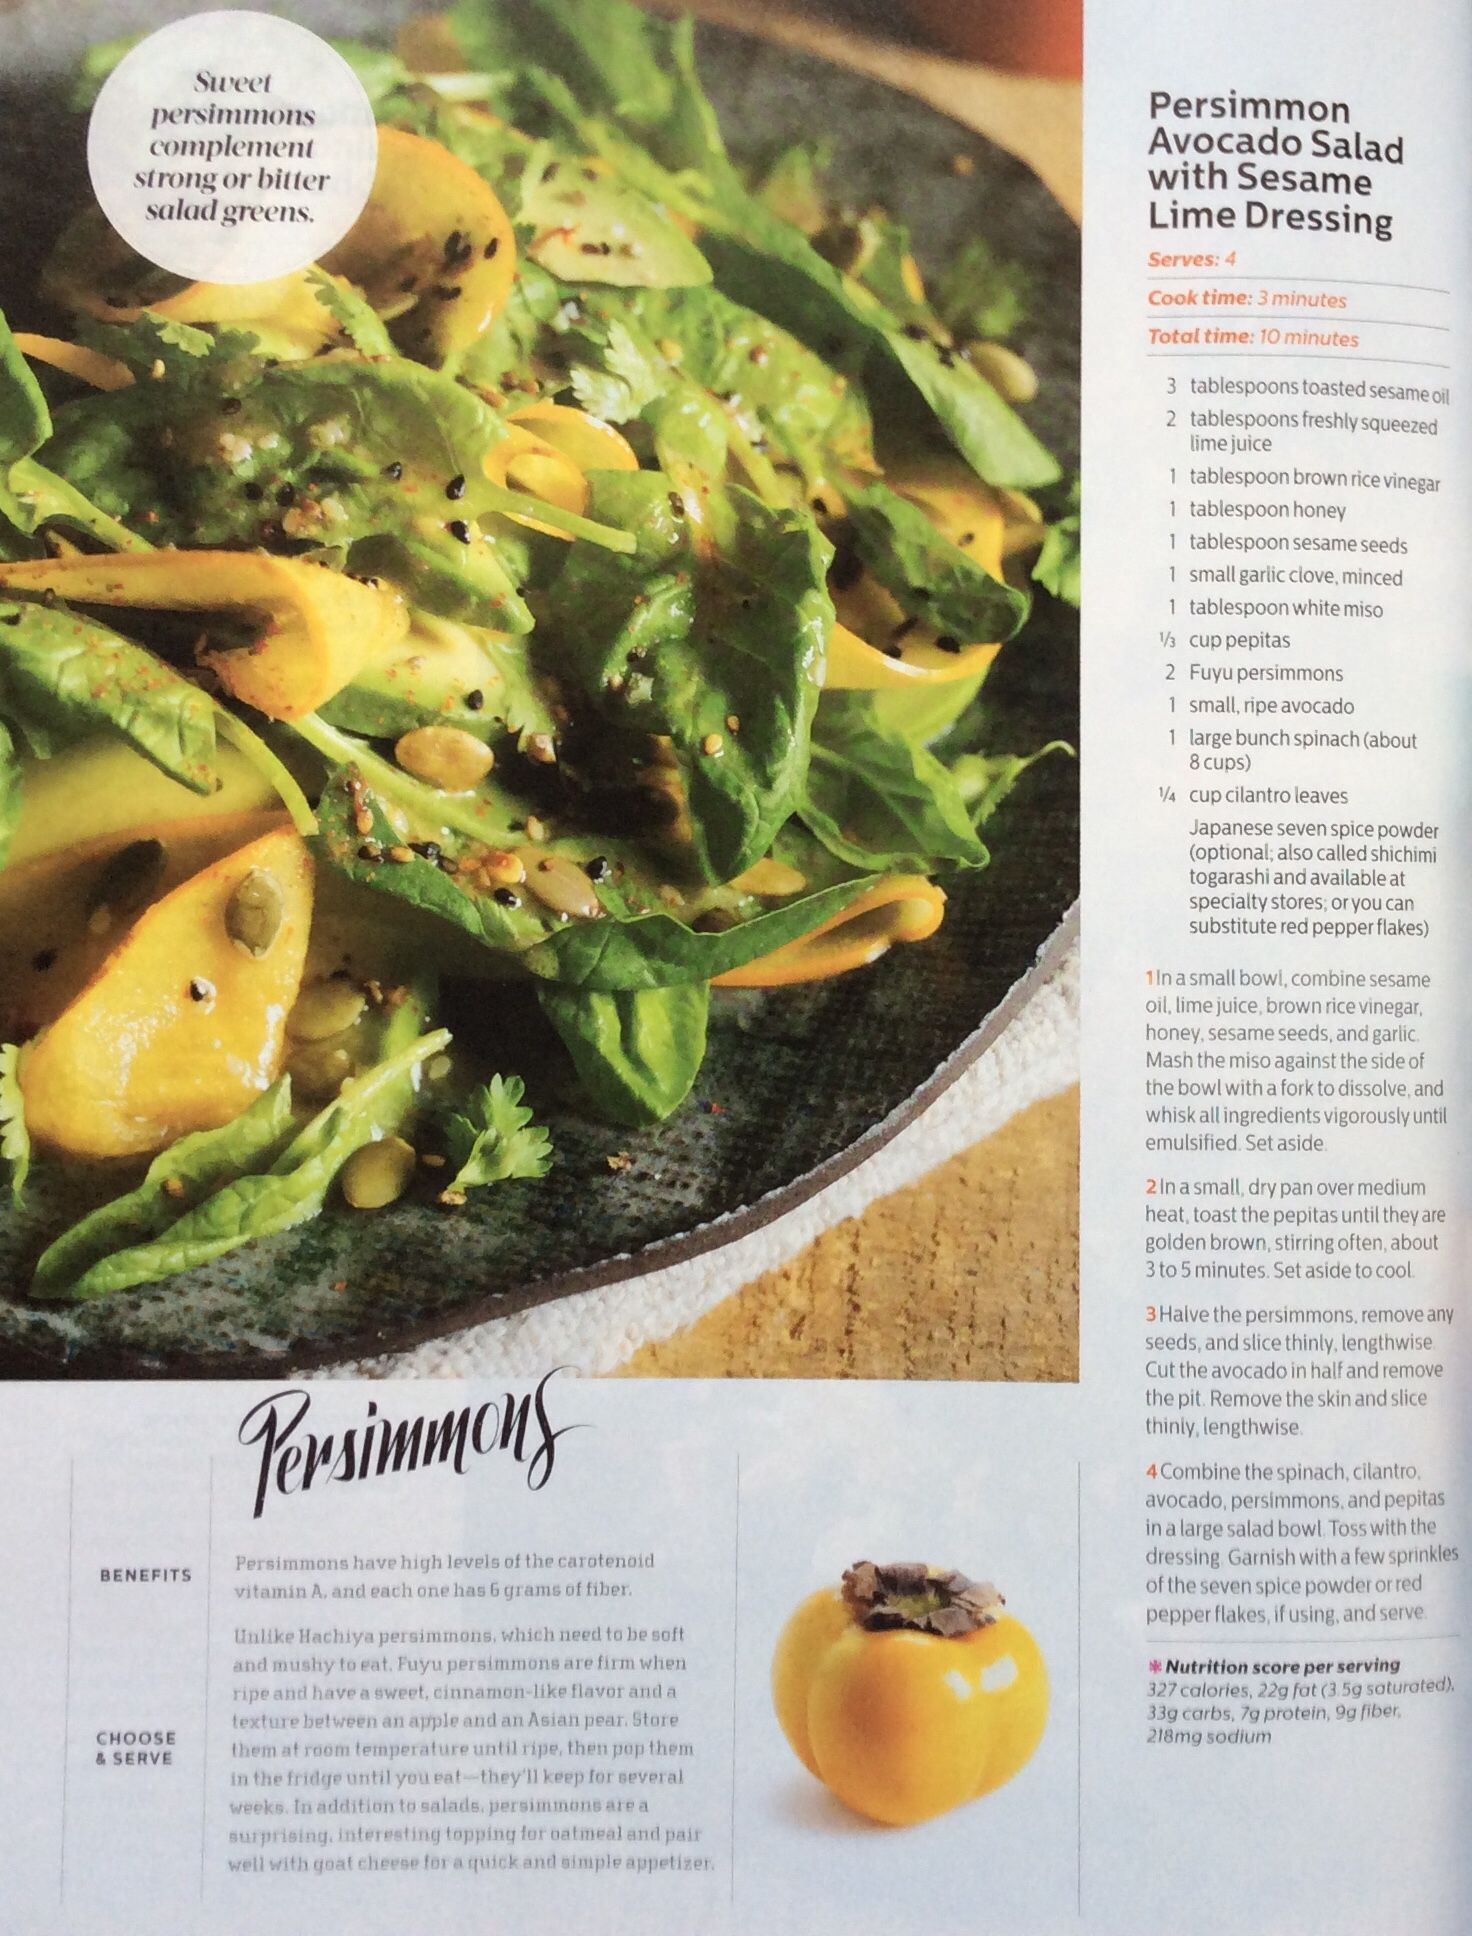 Persimmon and avocado salad with sesame lime dressing